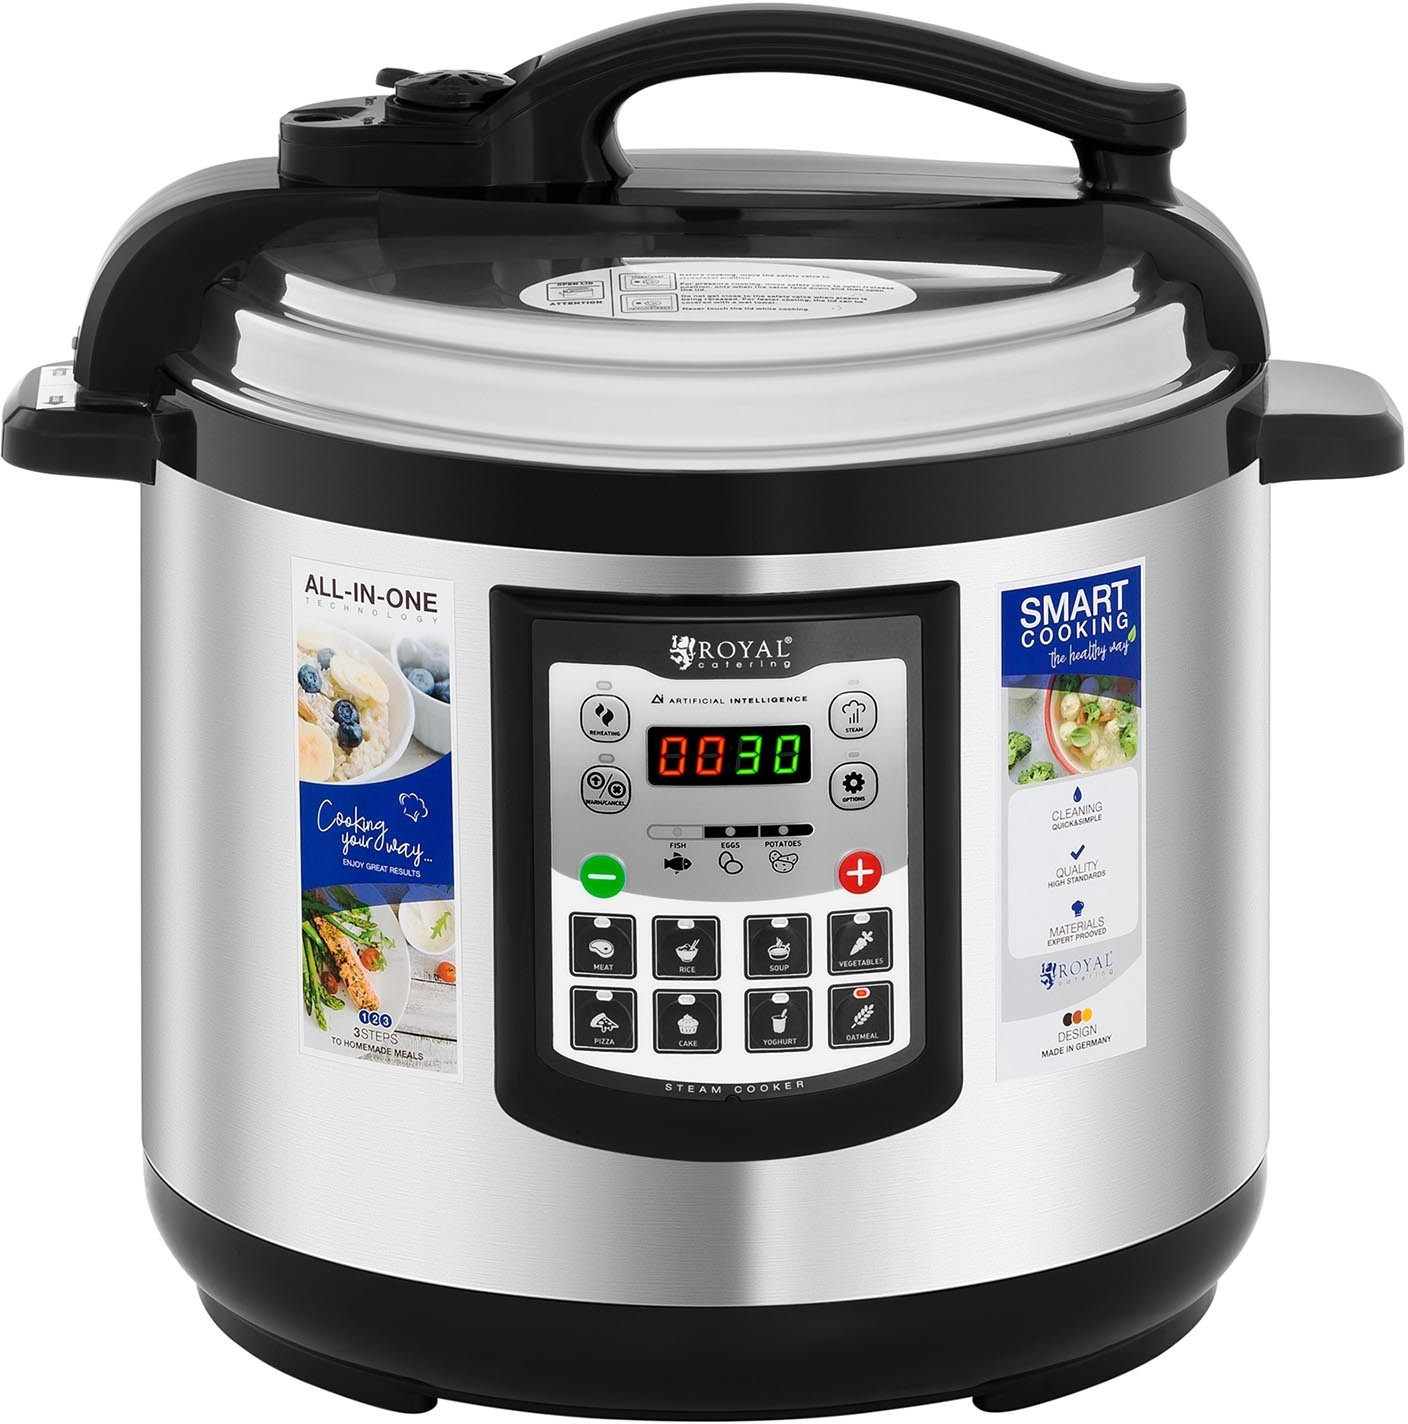 Image of Catering Royal Multifunctional Cooker 8 ltr.